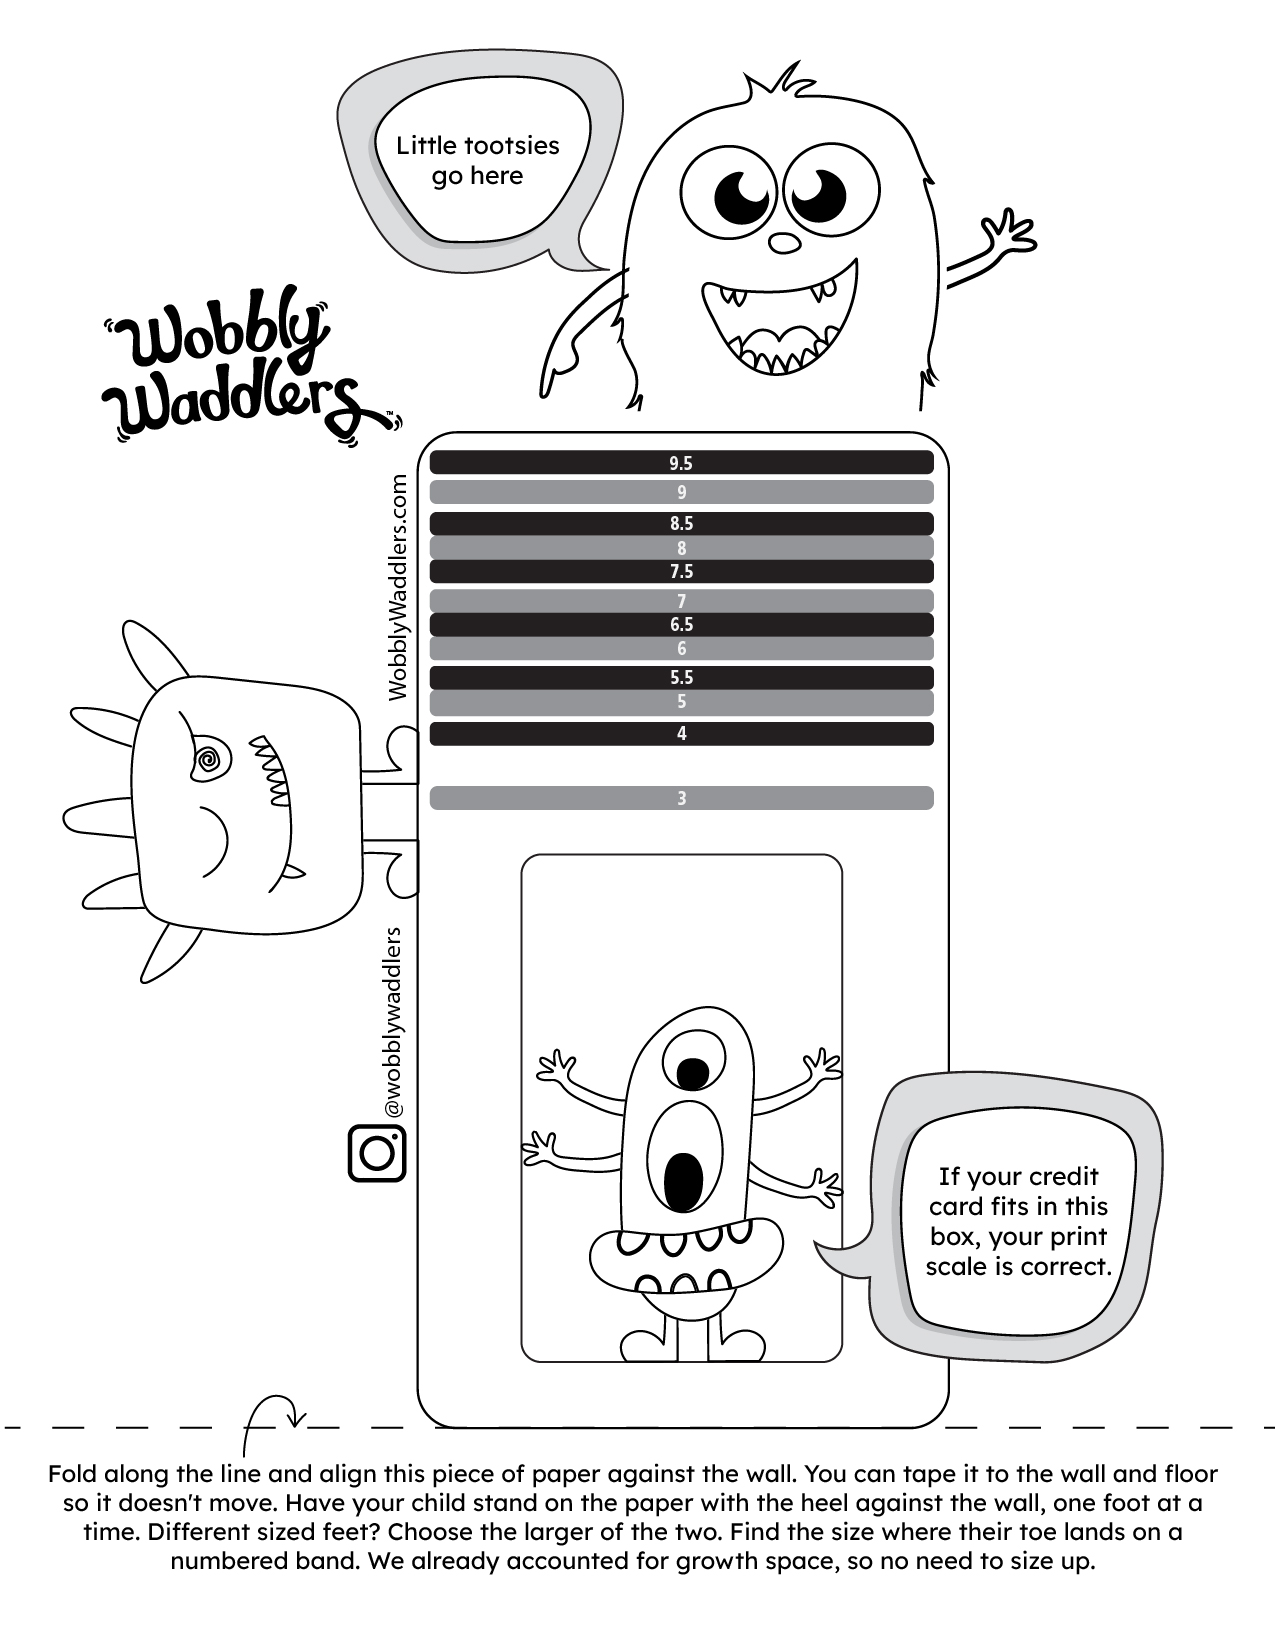 wobbly-waddlers-sizing-tool-printable-01.jpg